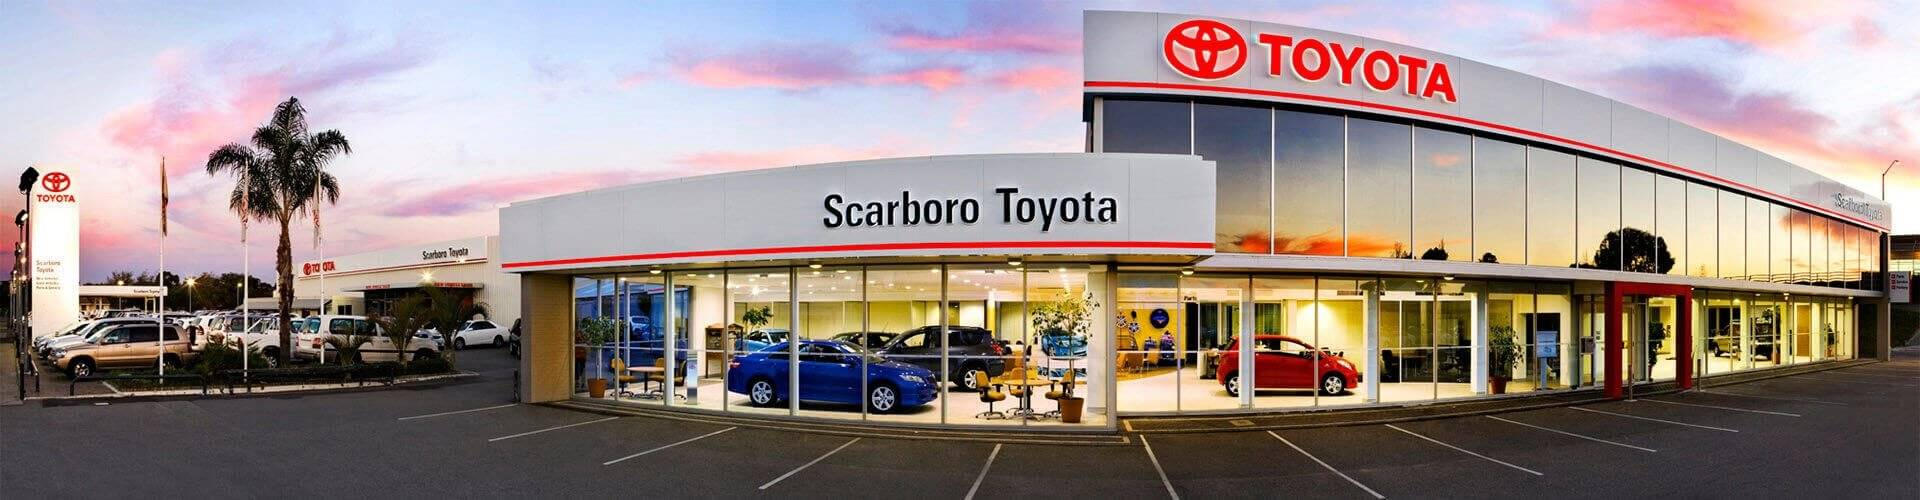 toyota power survey dealer in jemca jd top claims result